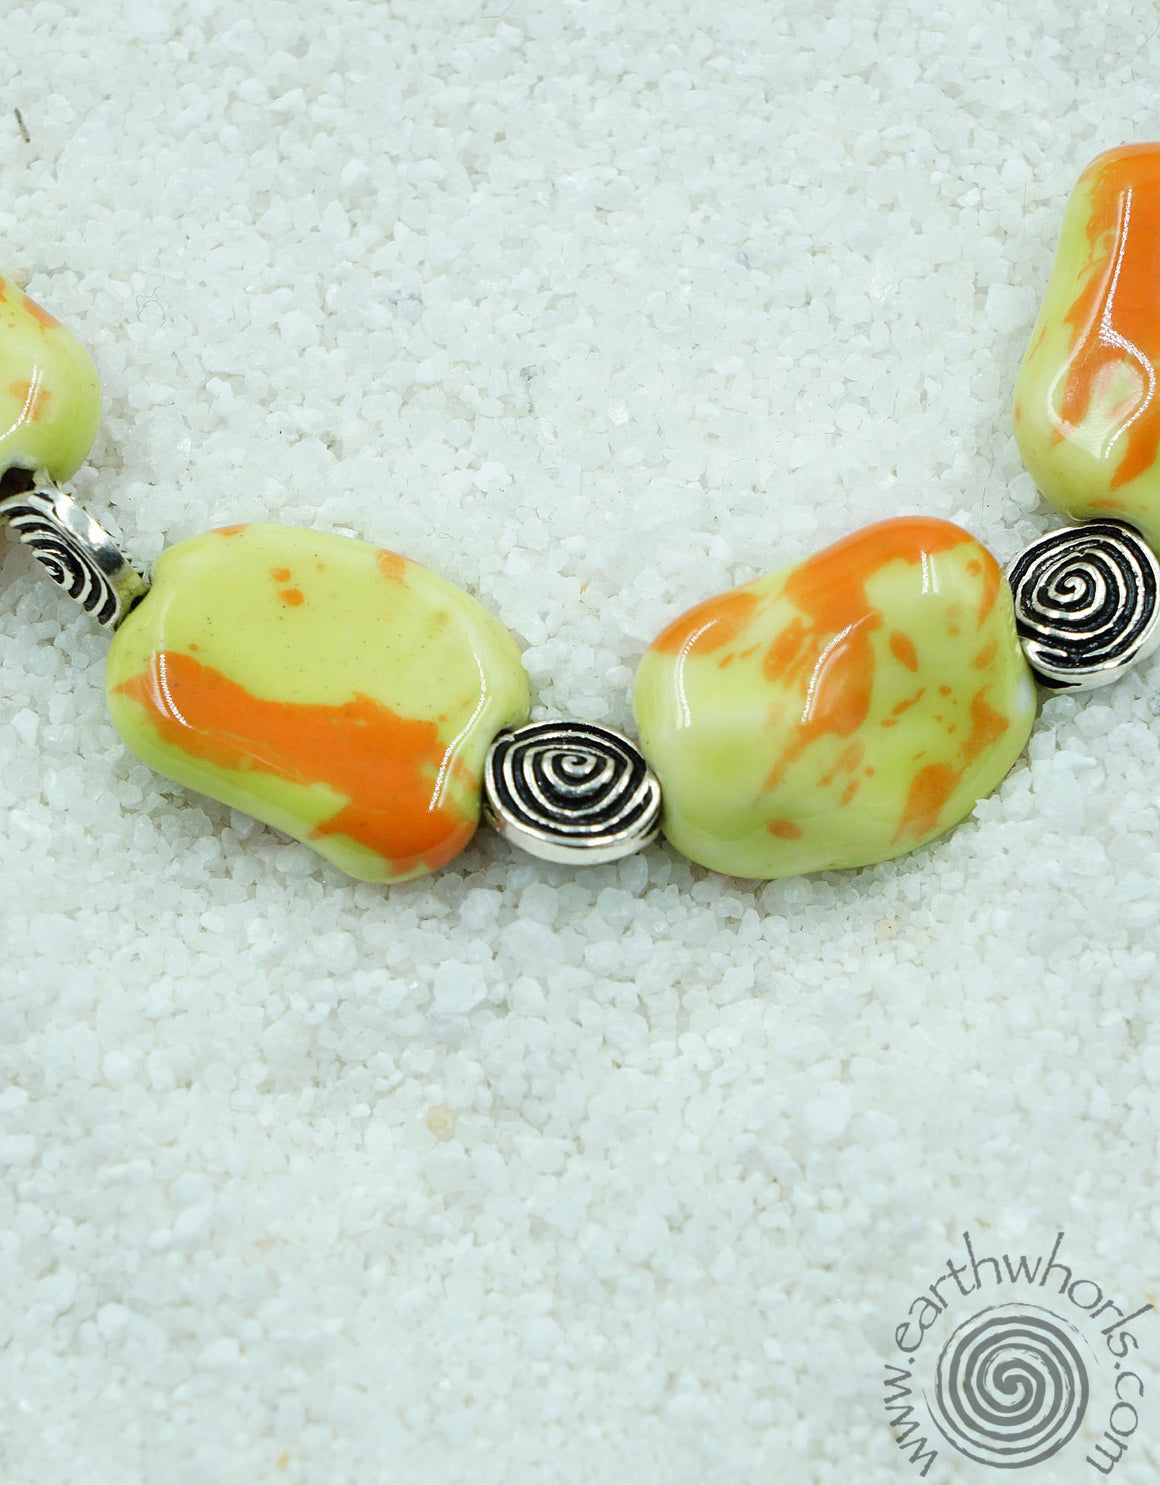 Porcelain Stone & Sterling Silver Choker Style Necklace - EarthWhorls, LLC